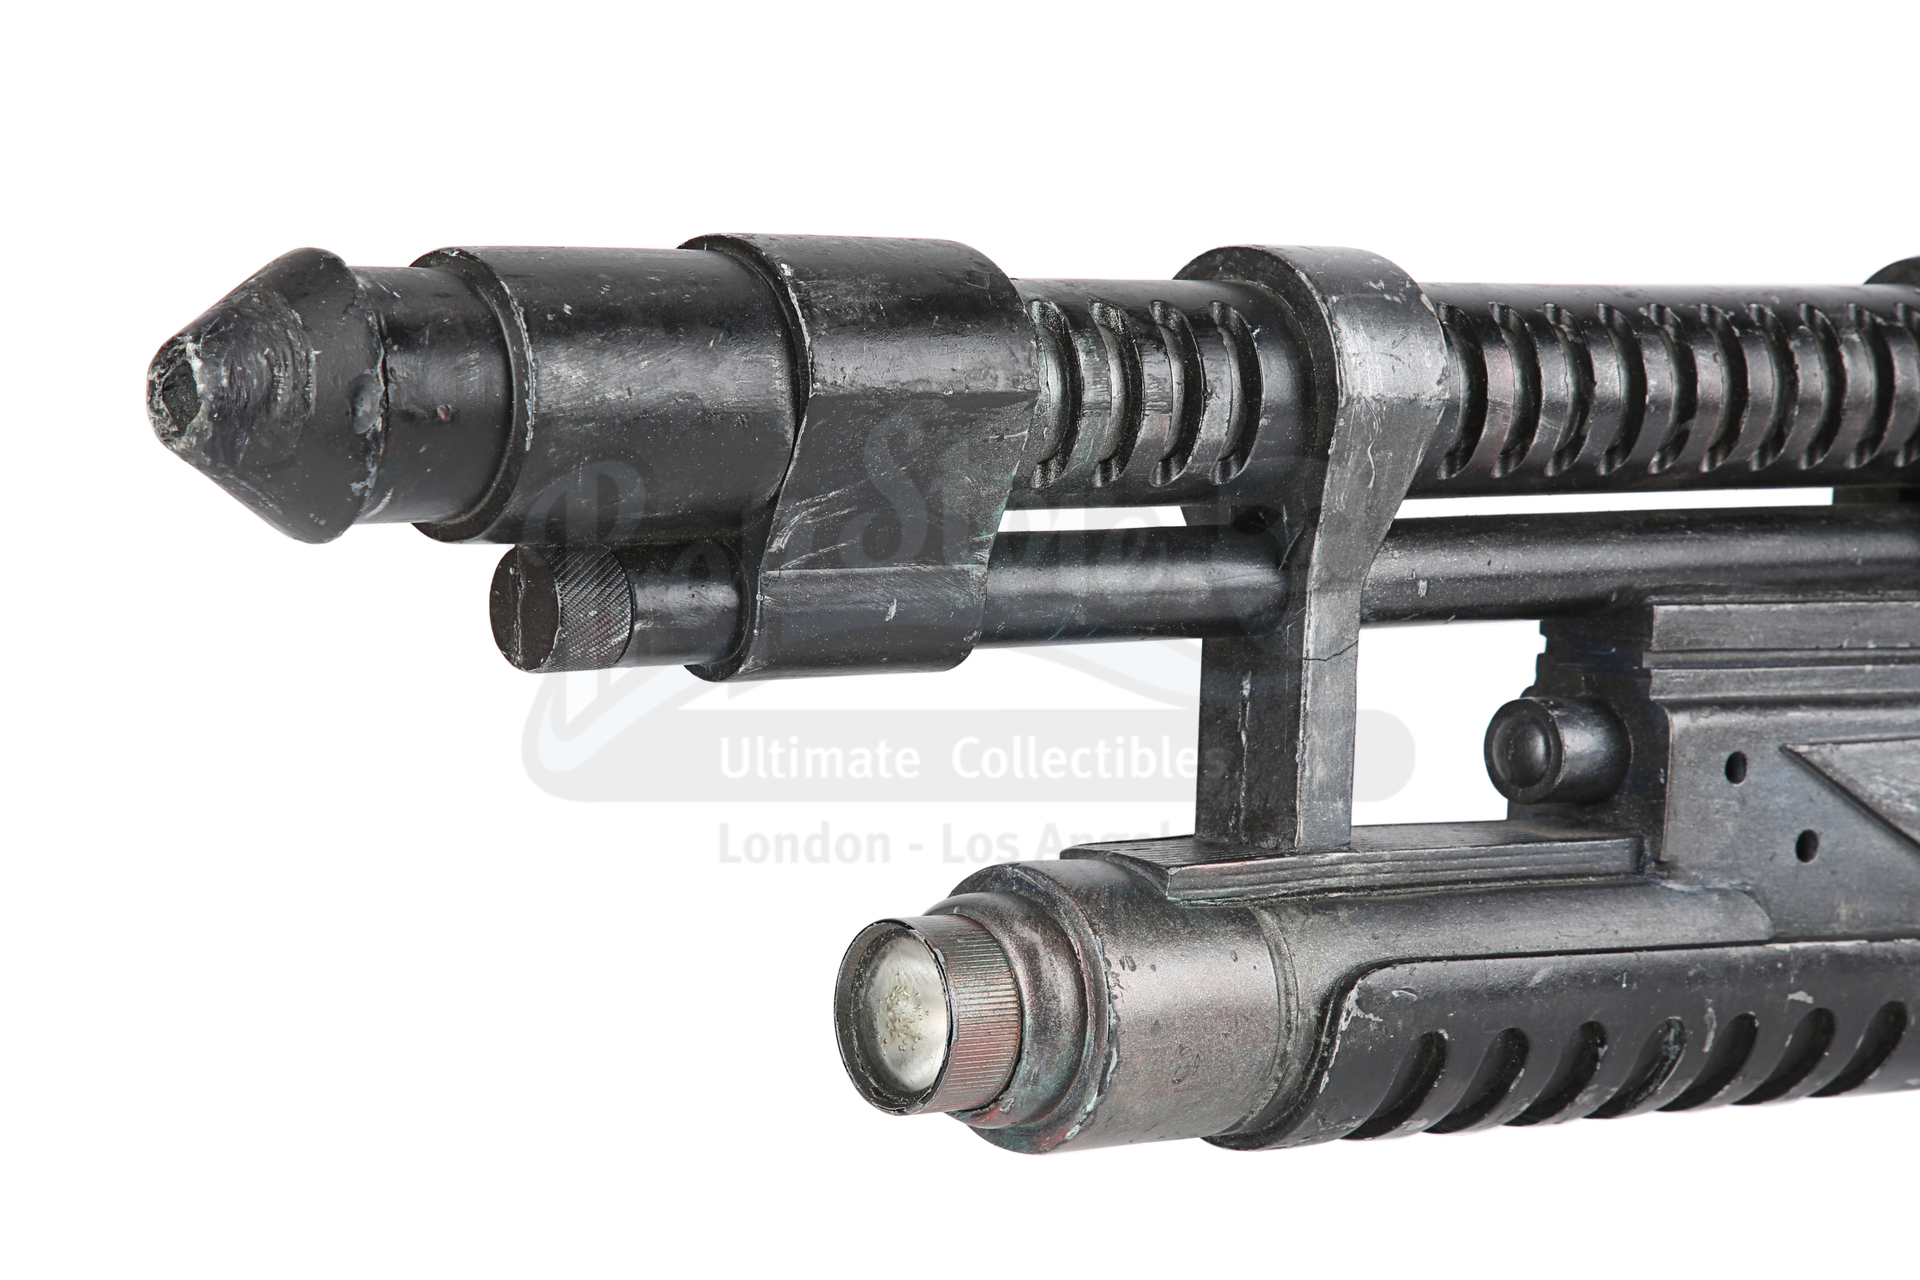 ALIEN RESURRECTION (1997) - Light-Up AR-2 Rifle - Image 4 of 19